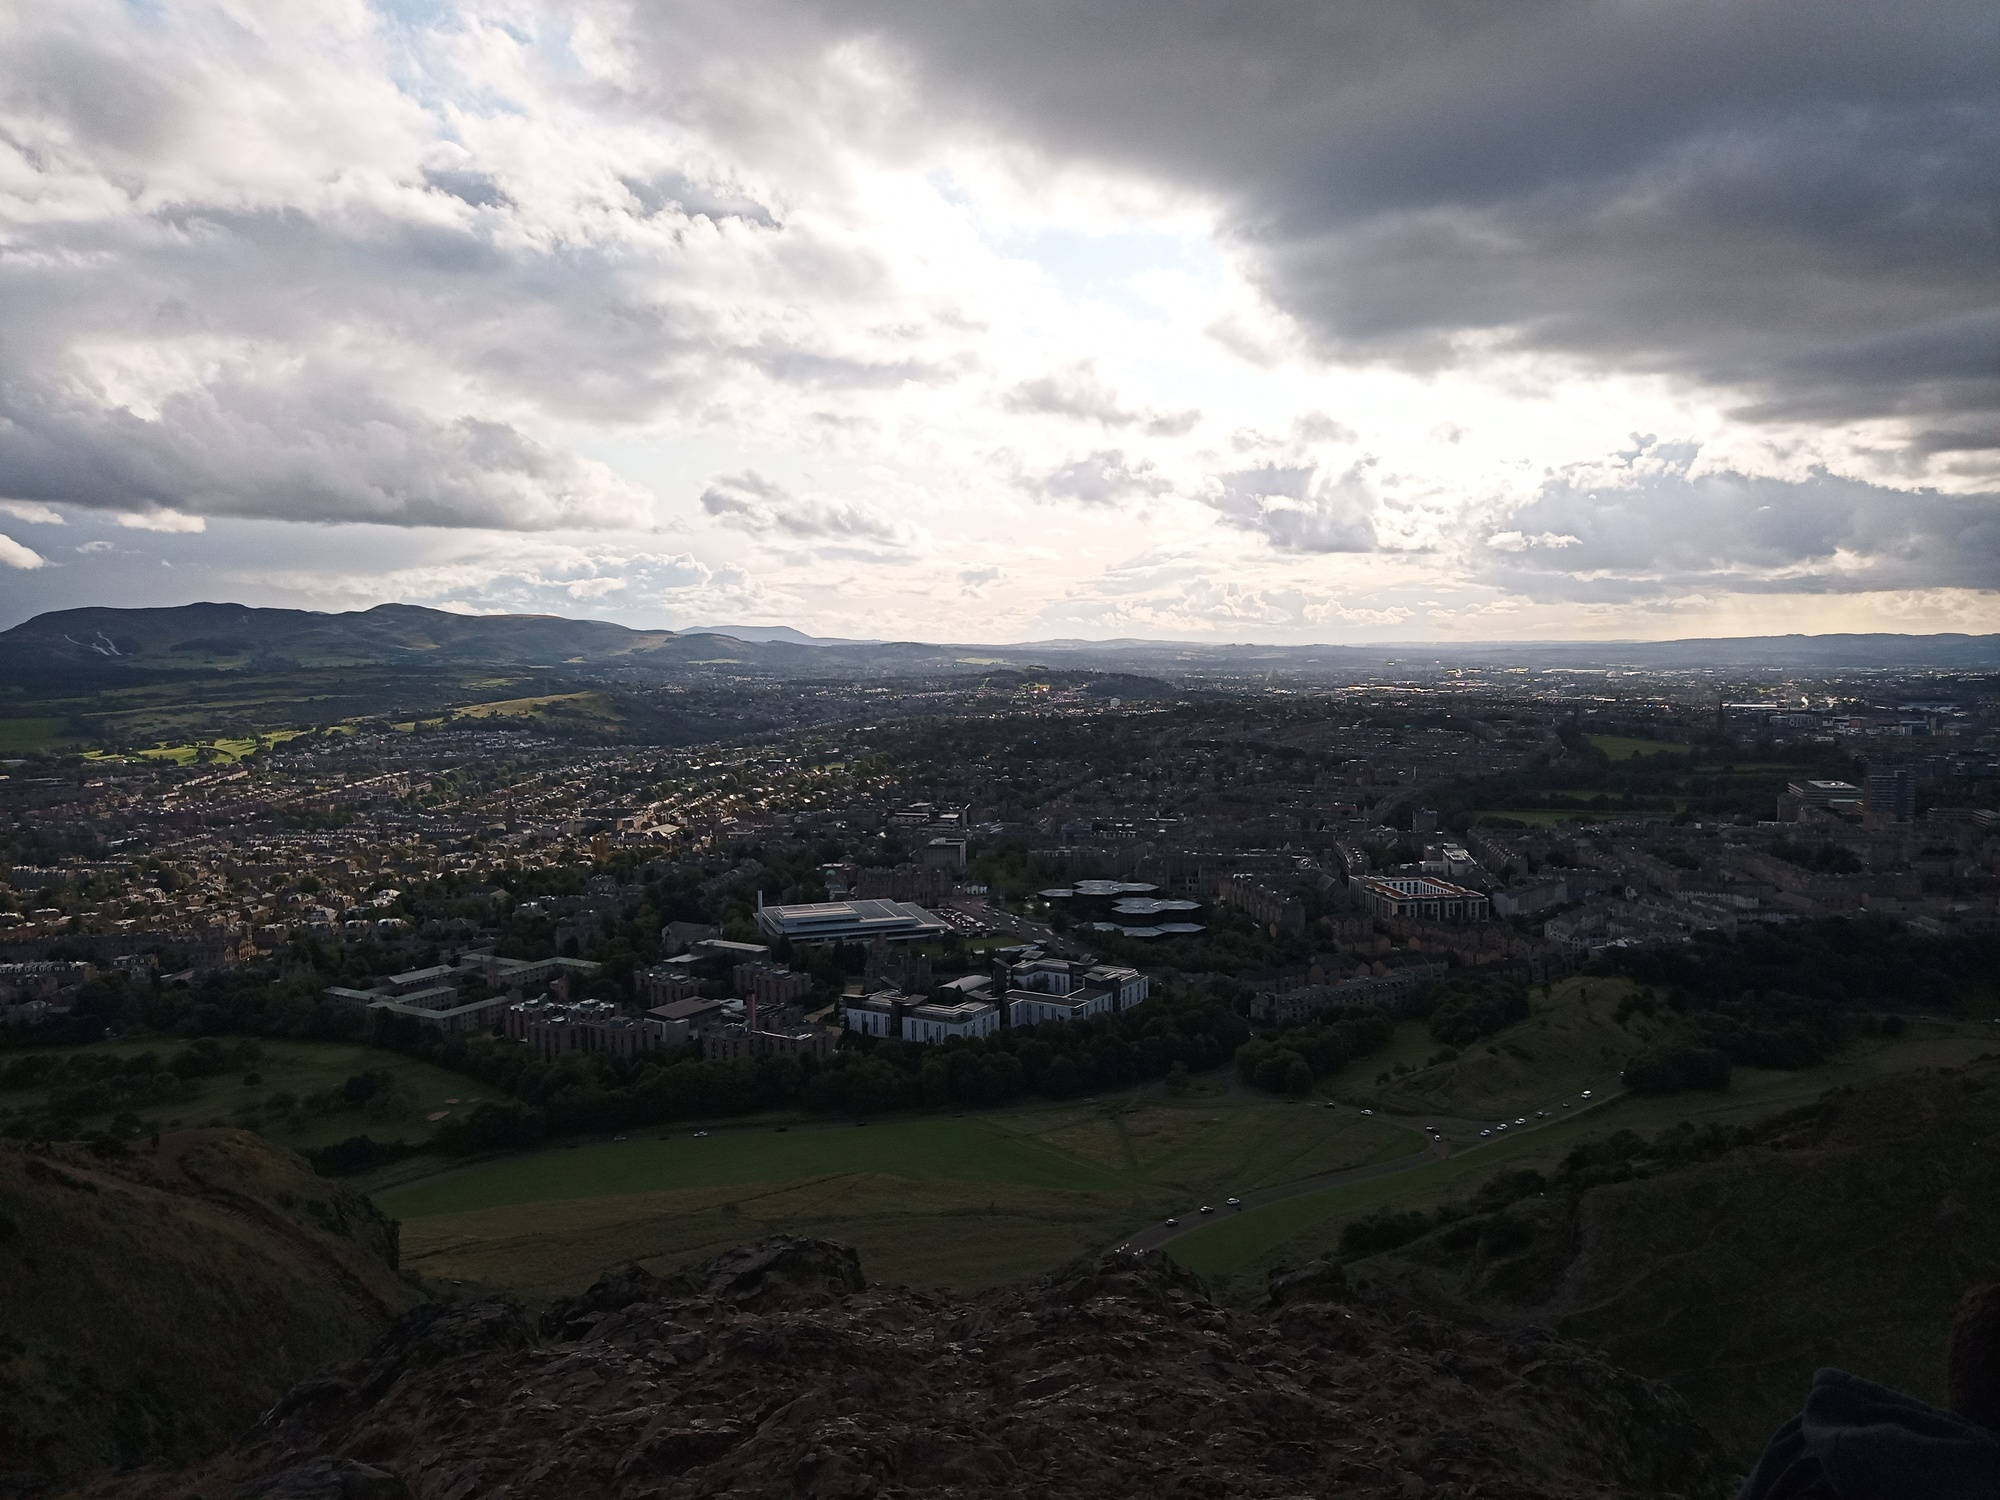 Also Edinburgh from above